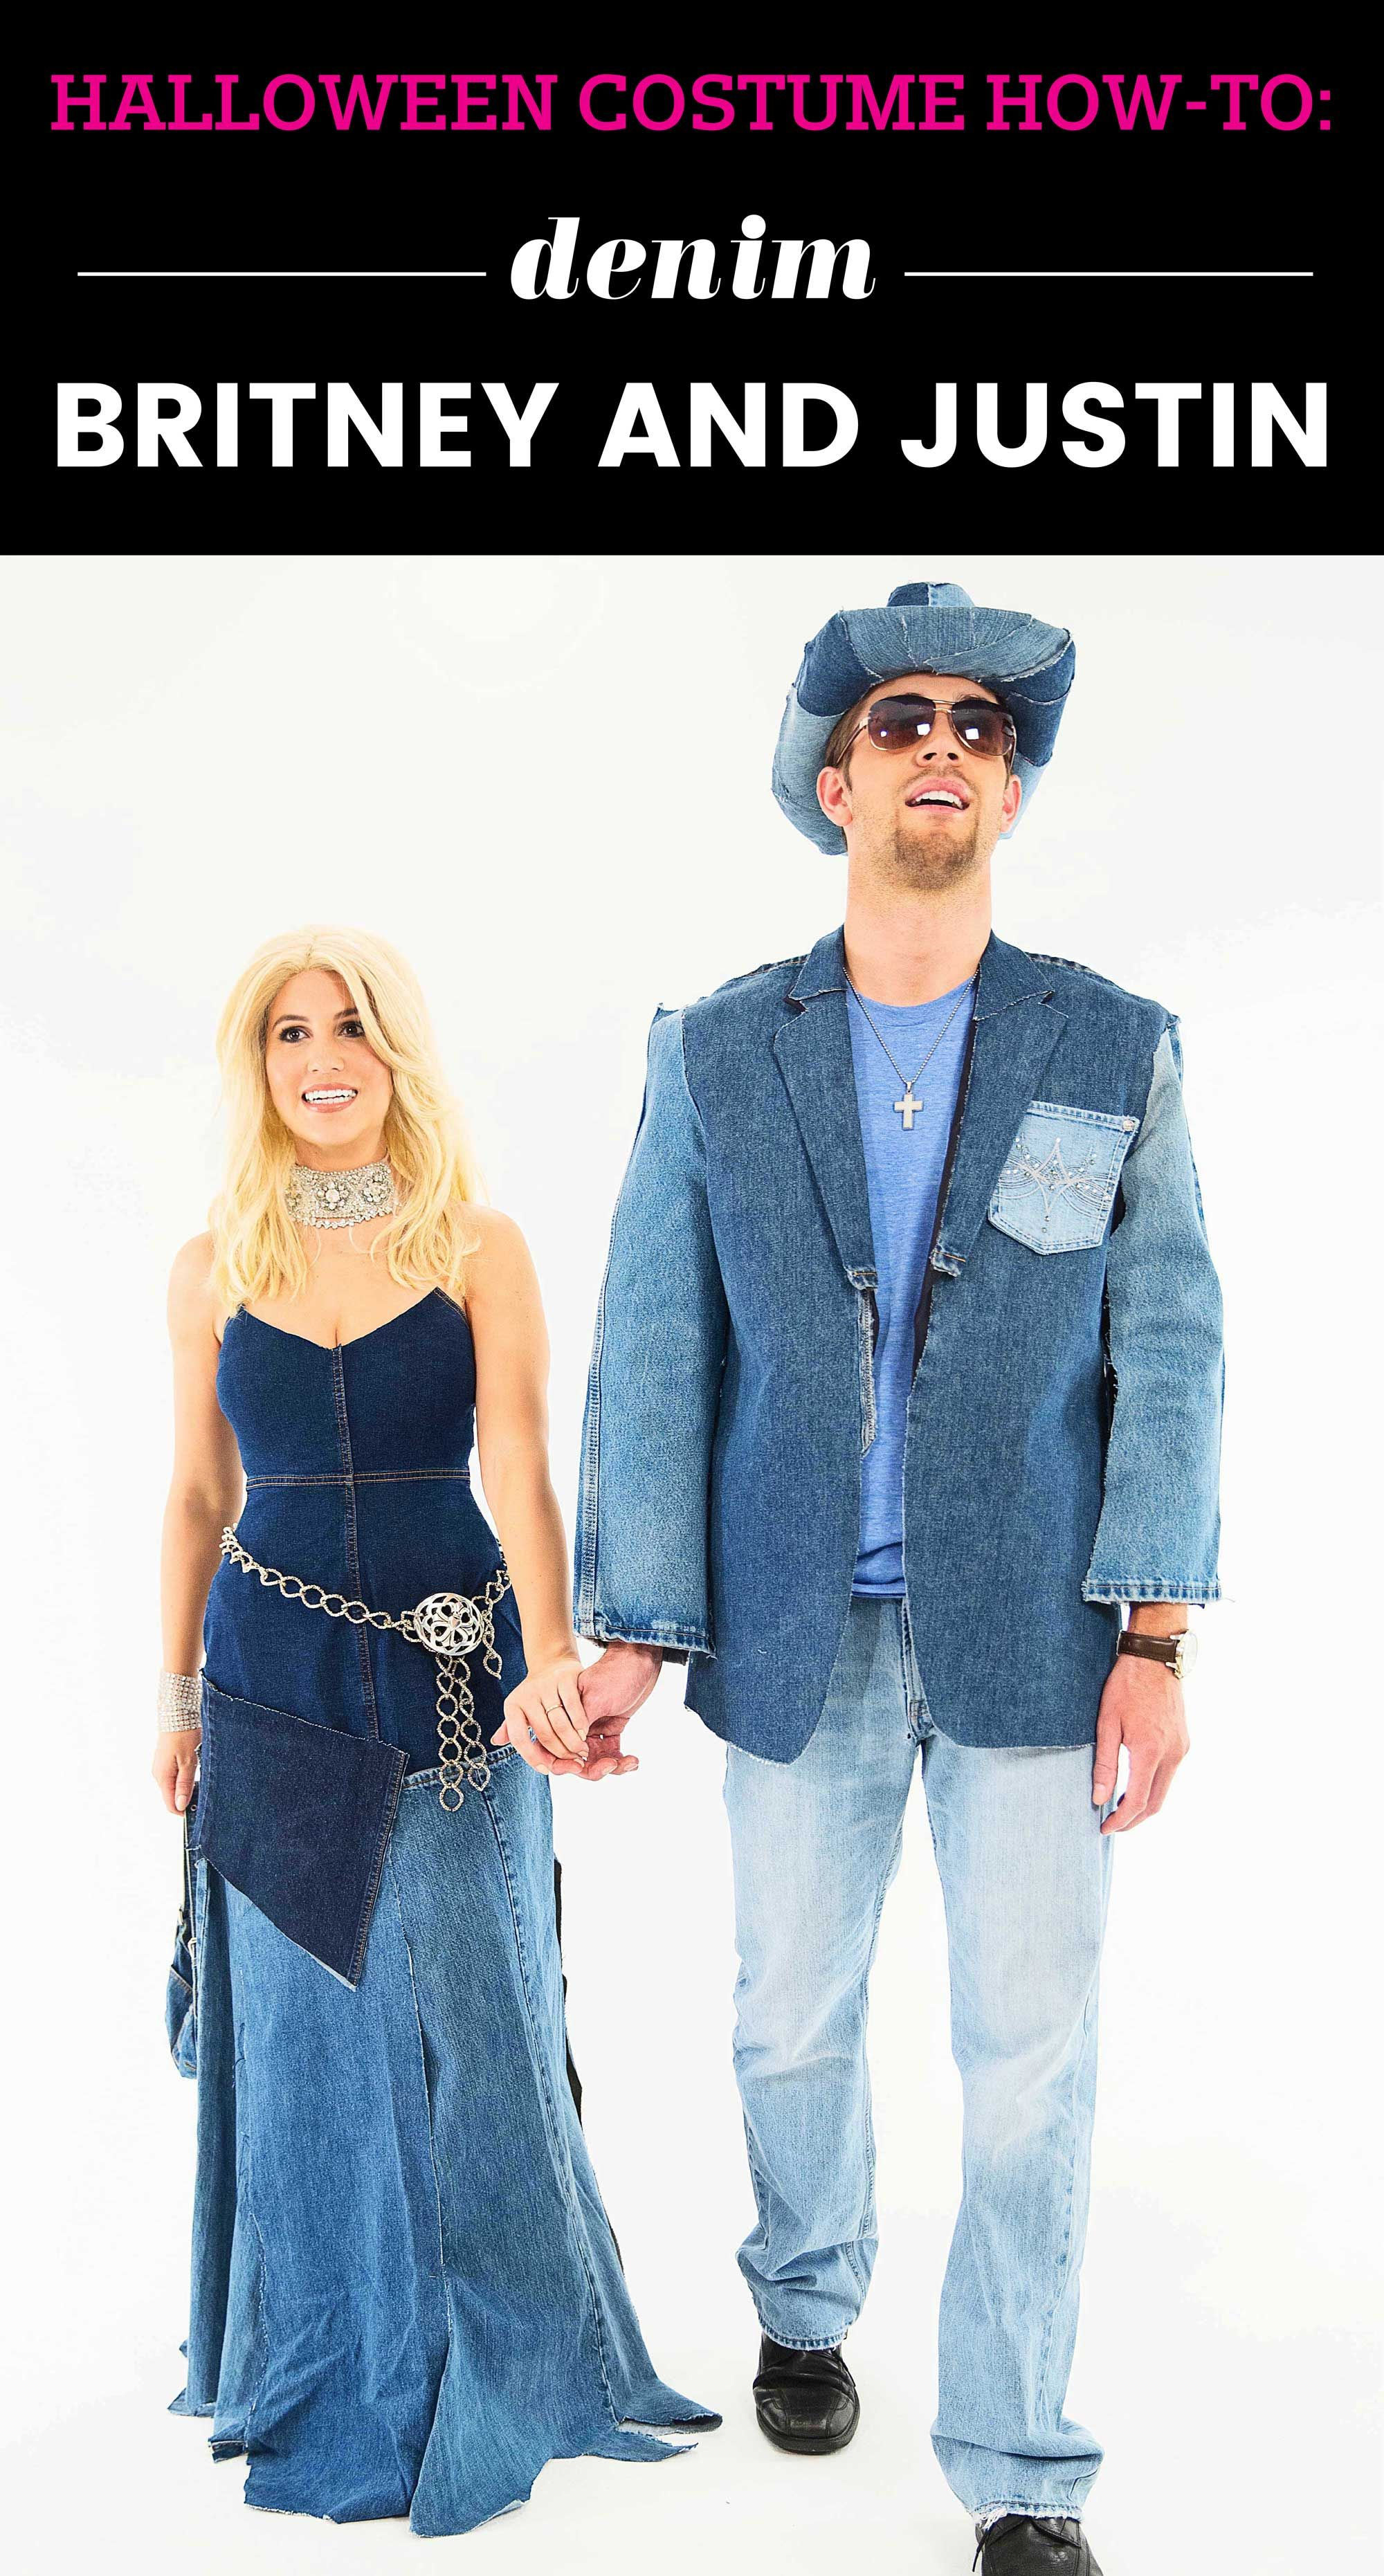 2e26147d2a5 Justin Timberlake and Britney Spears at the 2001 American Music Awards  halloween costume. Denim on denim perfection!